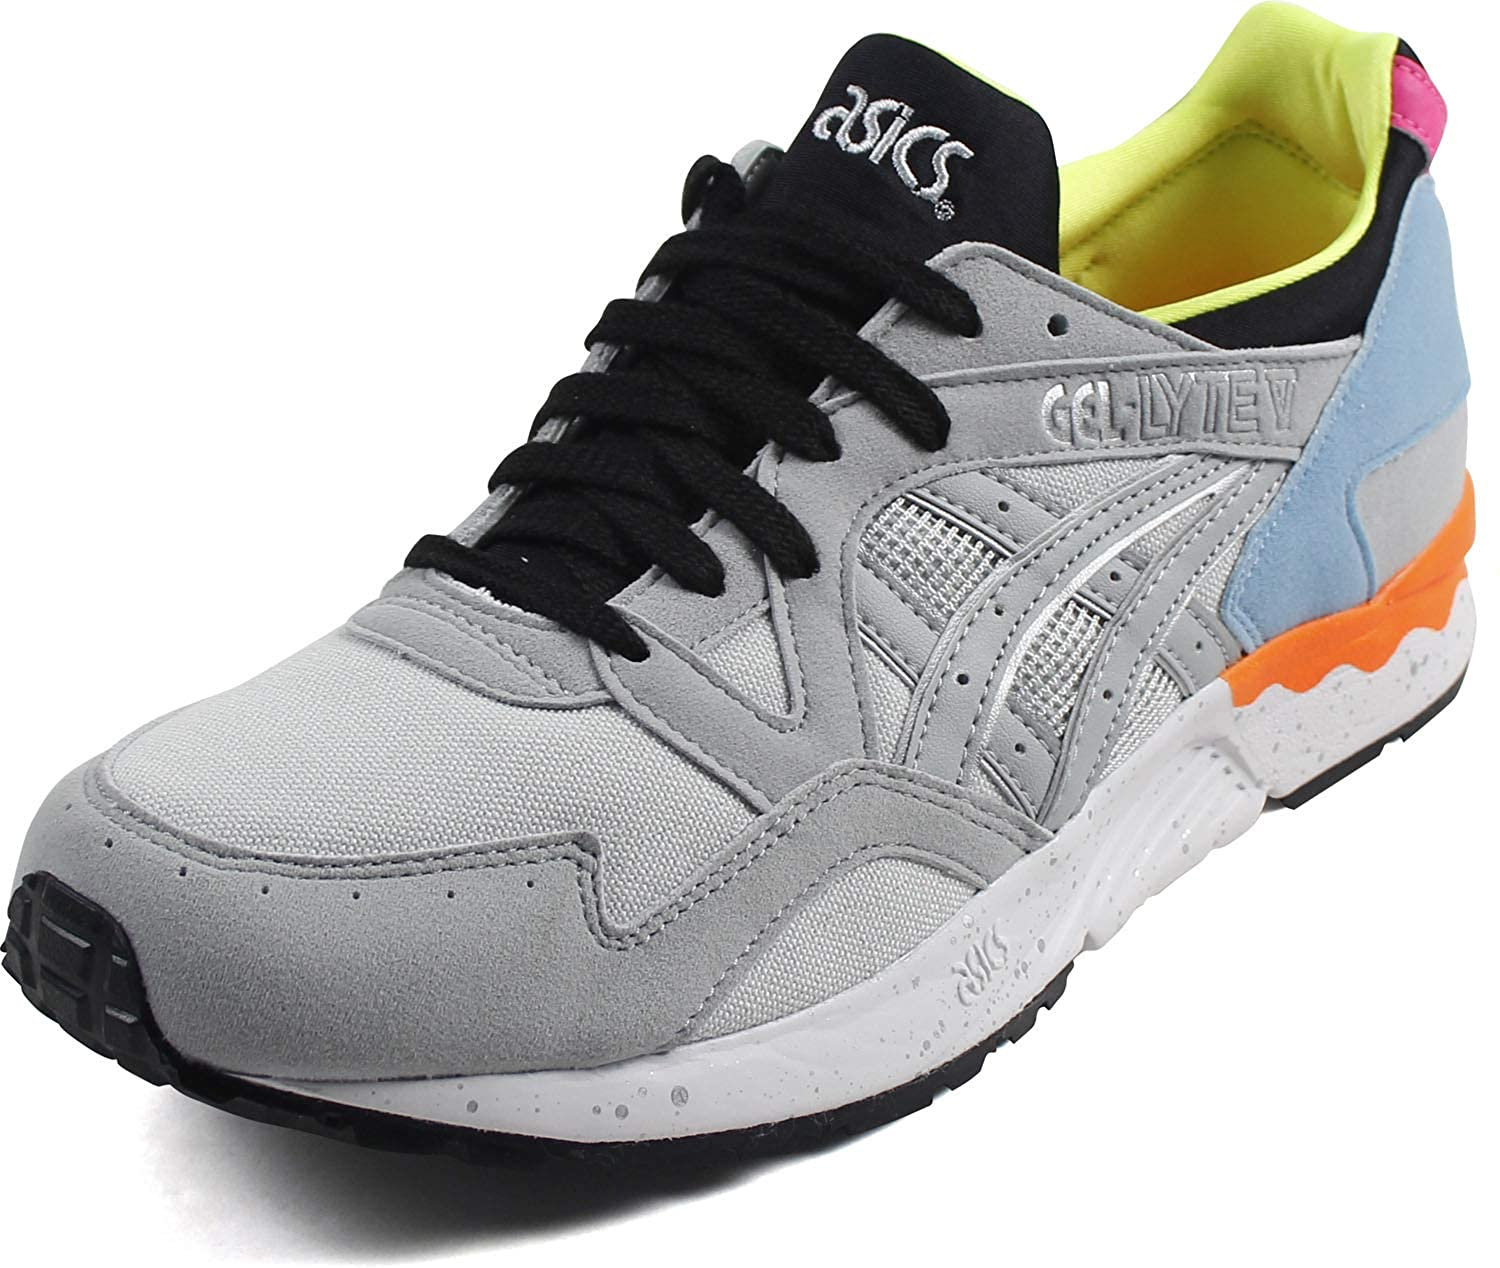 reputable site b2cab b9a1f Amazon.com | ASICS Tiger Men's Gel-Lyte V Sneakers, Mid Grey ...